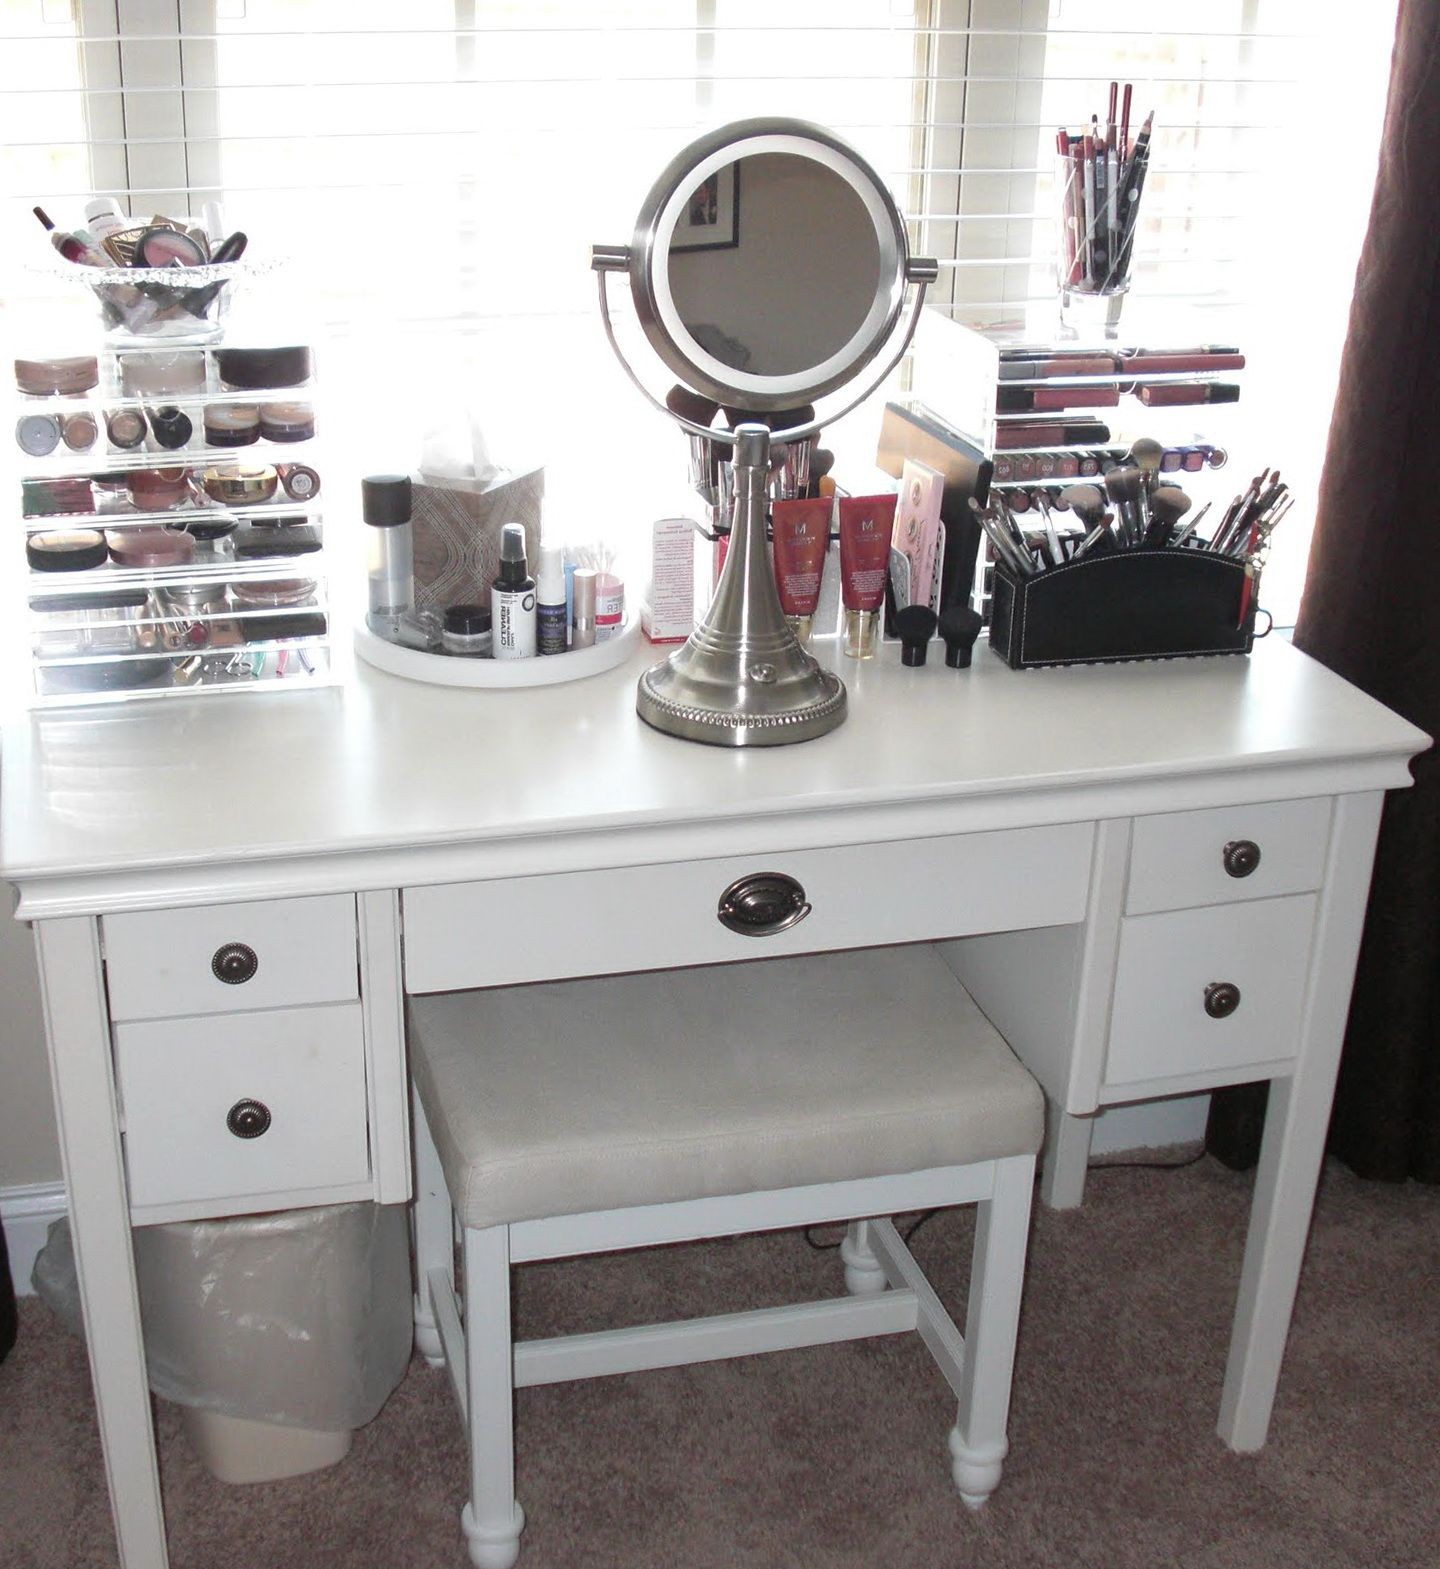 Stunning vanity table with lighted mirror for home furniture ideas stunning vanity table with lighted mirror for home furniture ideas white vanity penteadeiras aloadofball Image collections